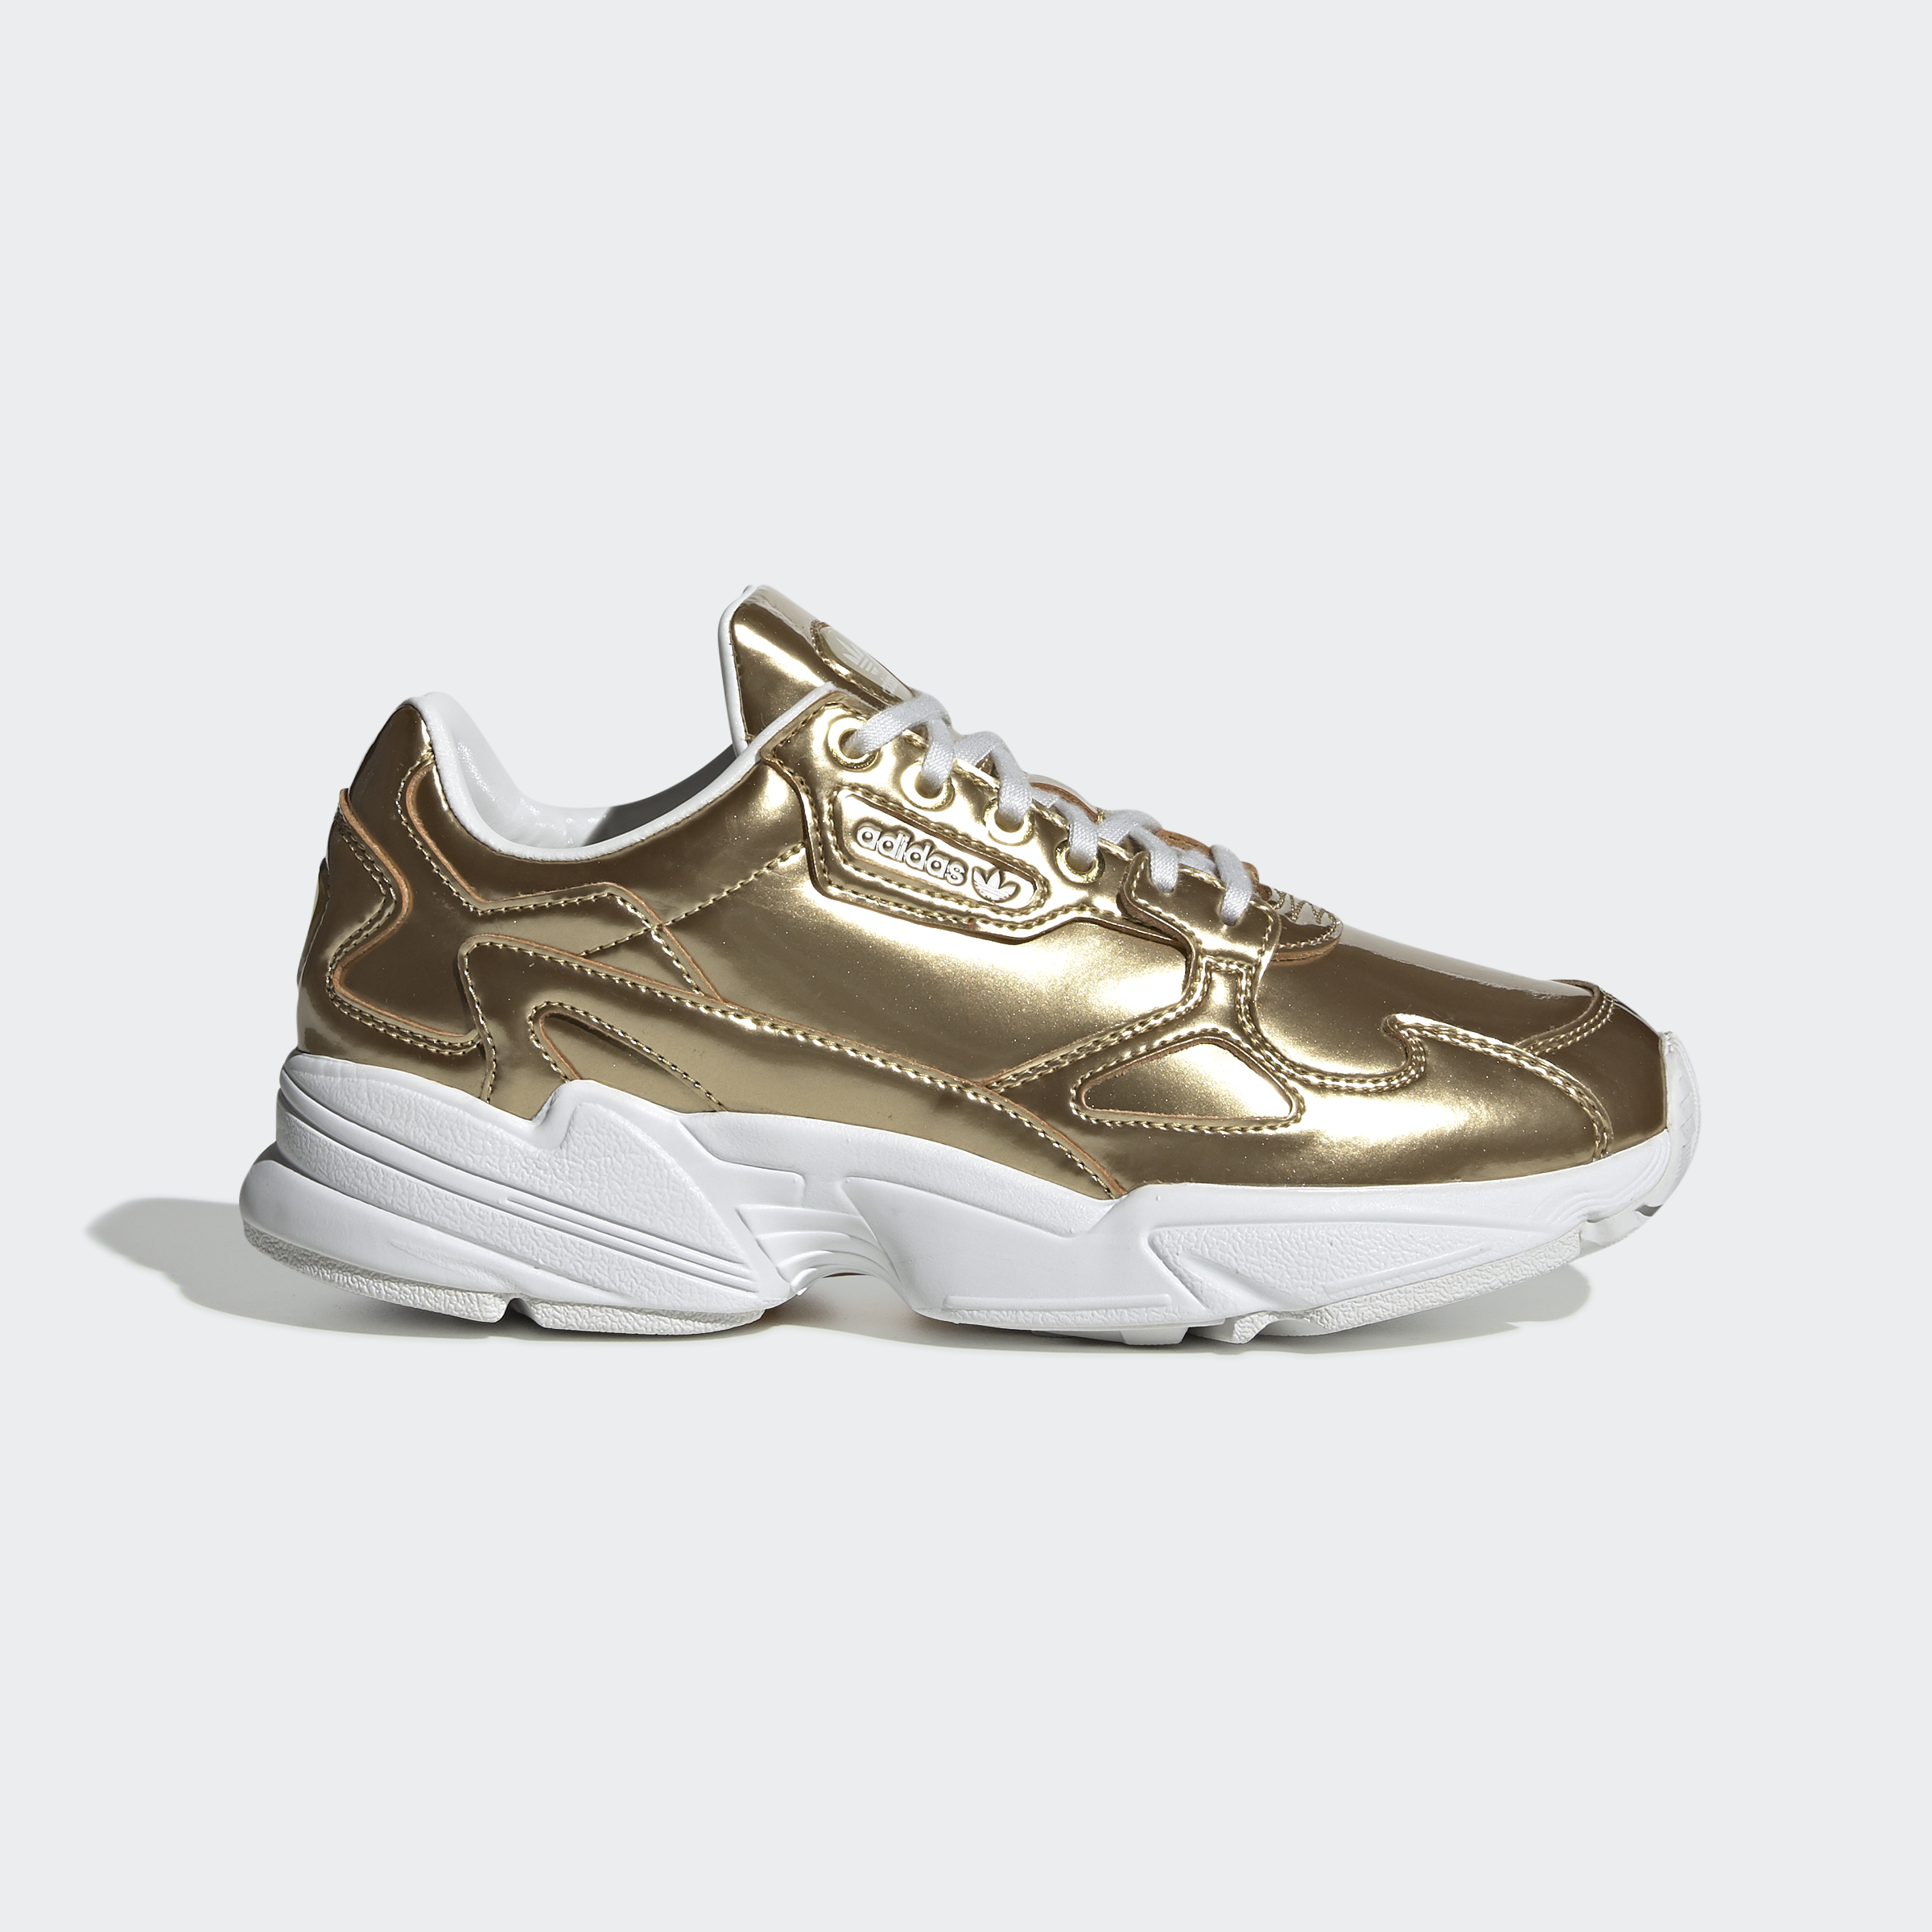 adidas-Falcon-Shoes-Women-039-s-Athletic-amp-Sneakers thumbnail 12